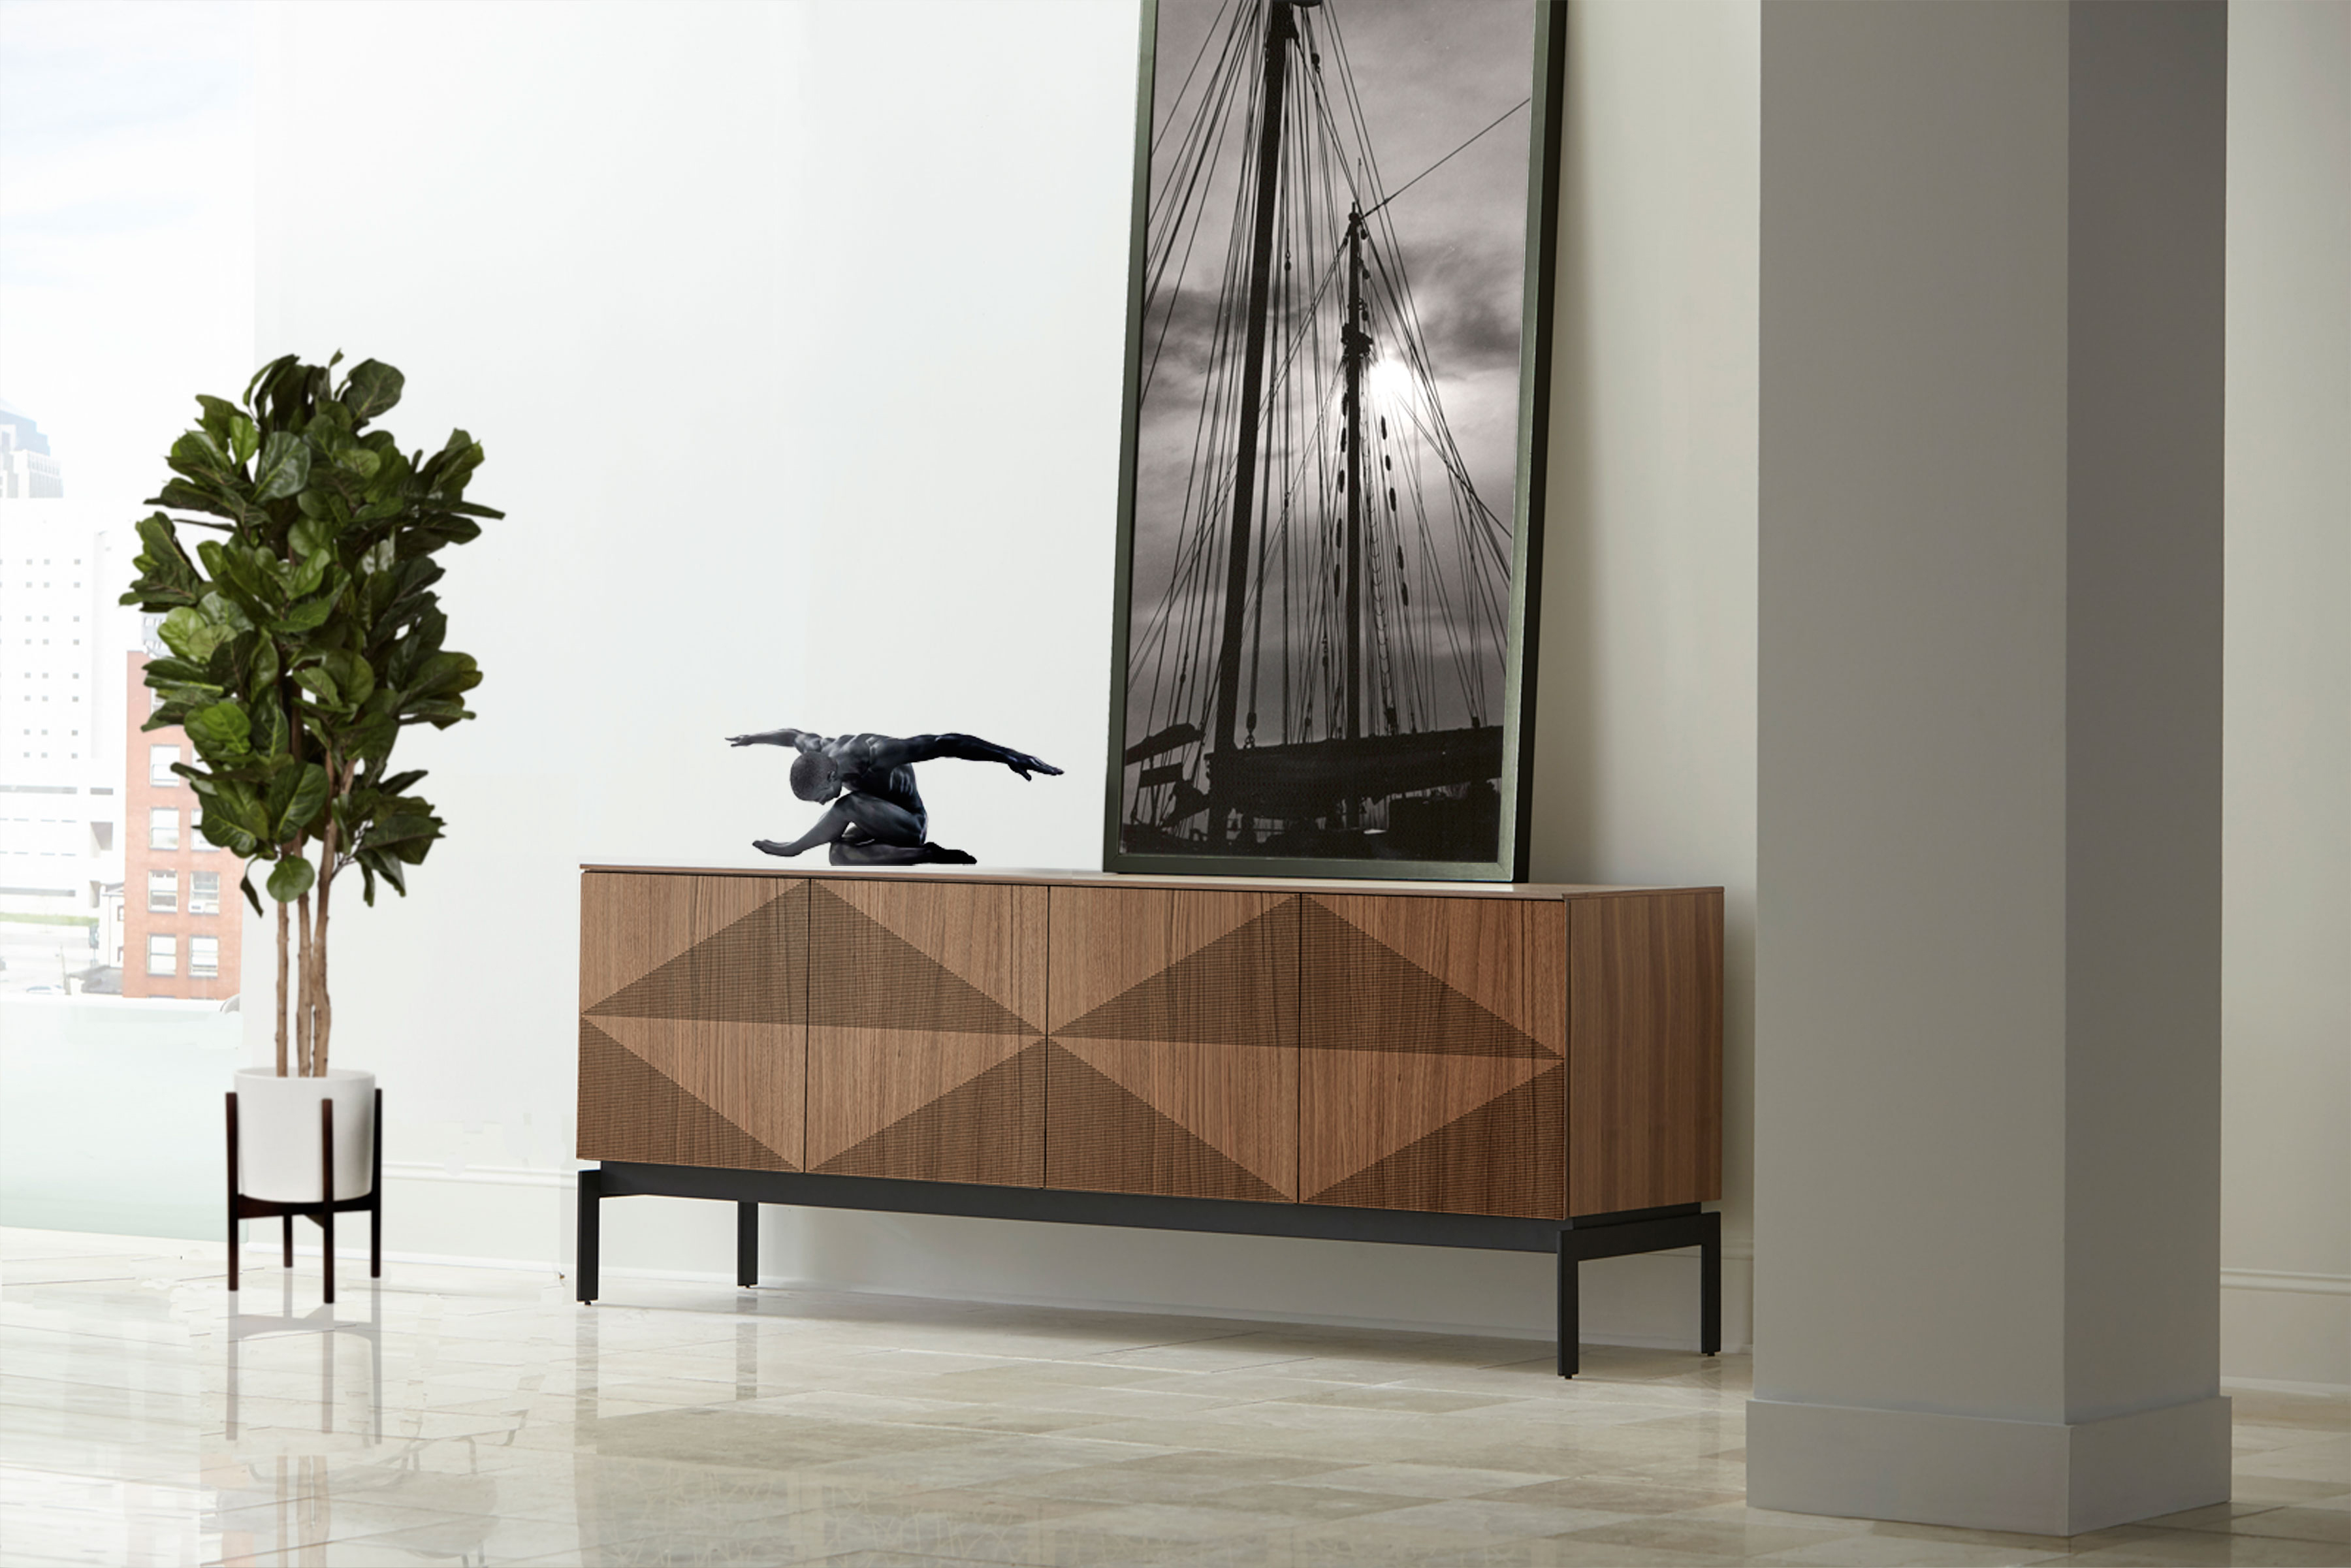 audio reviews decoration for home corridor component cabinet ikea tv other television stands room your set enhance stand may innovative bdi chairs as that cupboard living theater designs robert small furniture clearance design jr will now graham homey and on movie such theather good up at basic